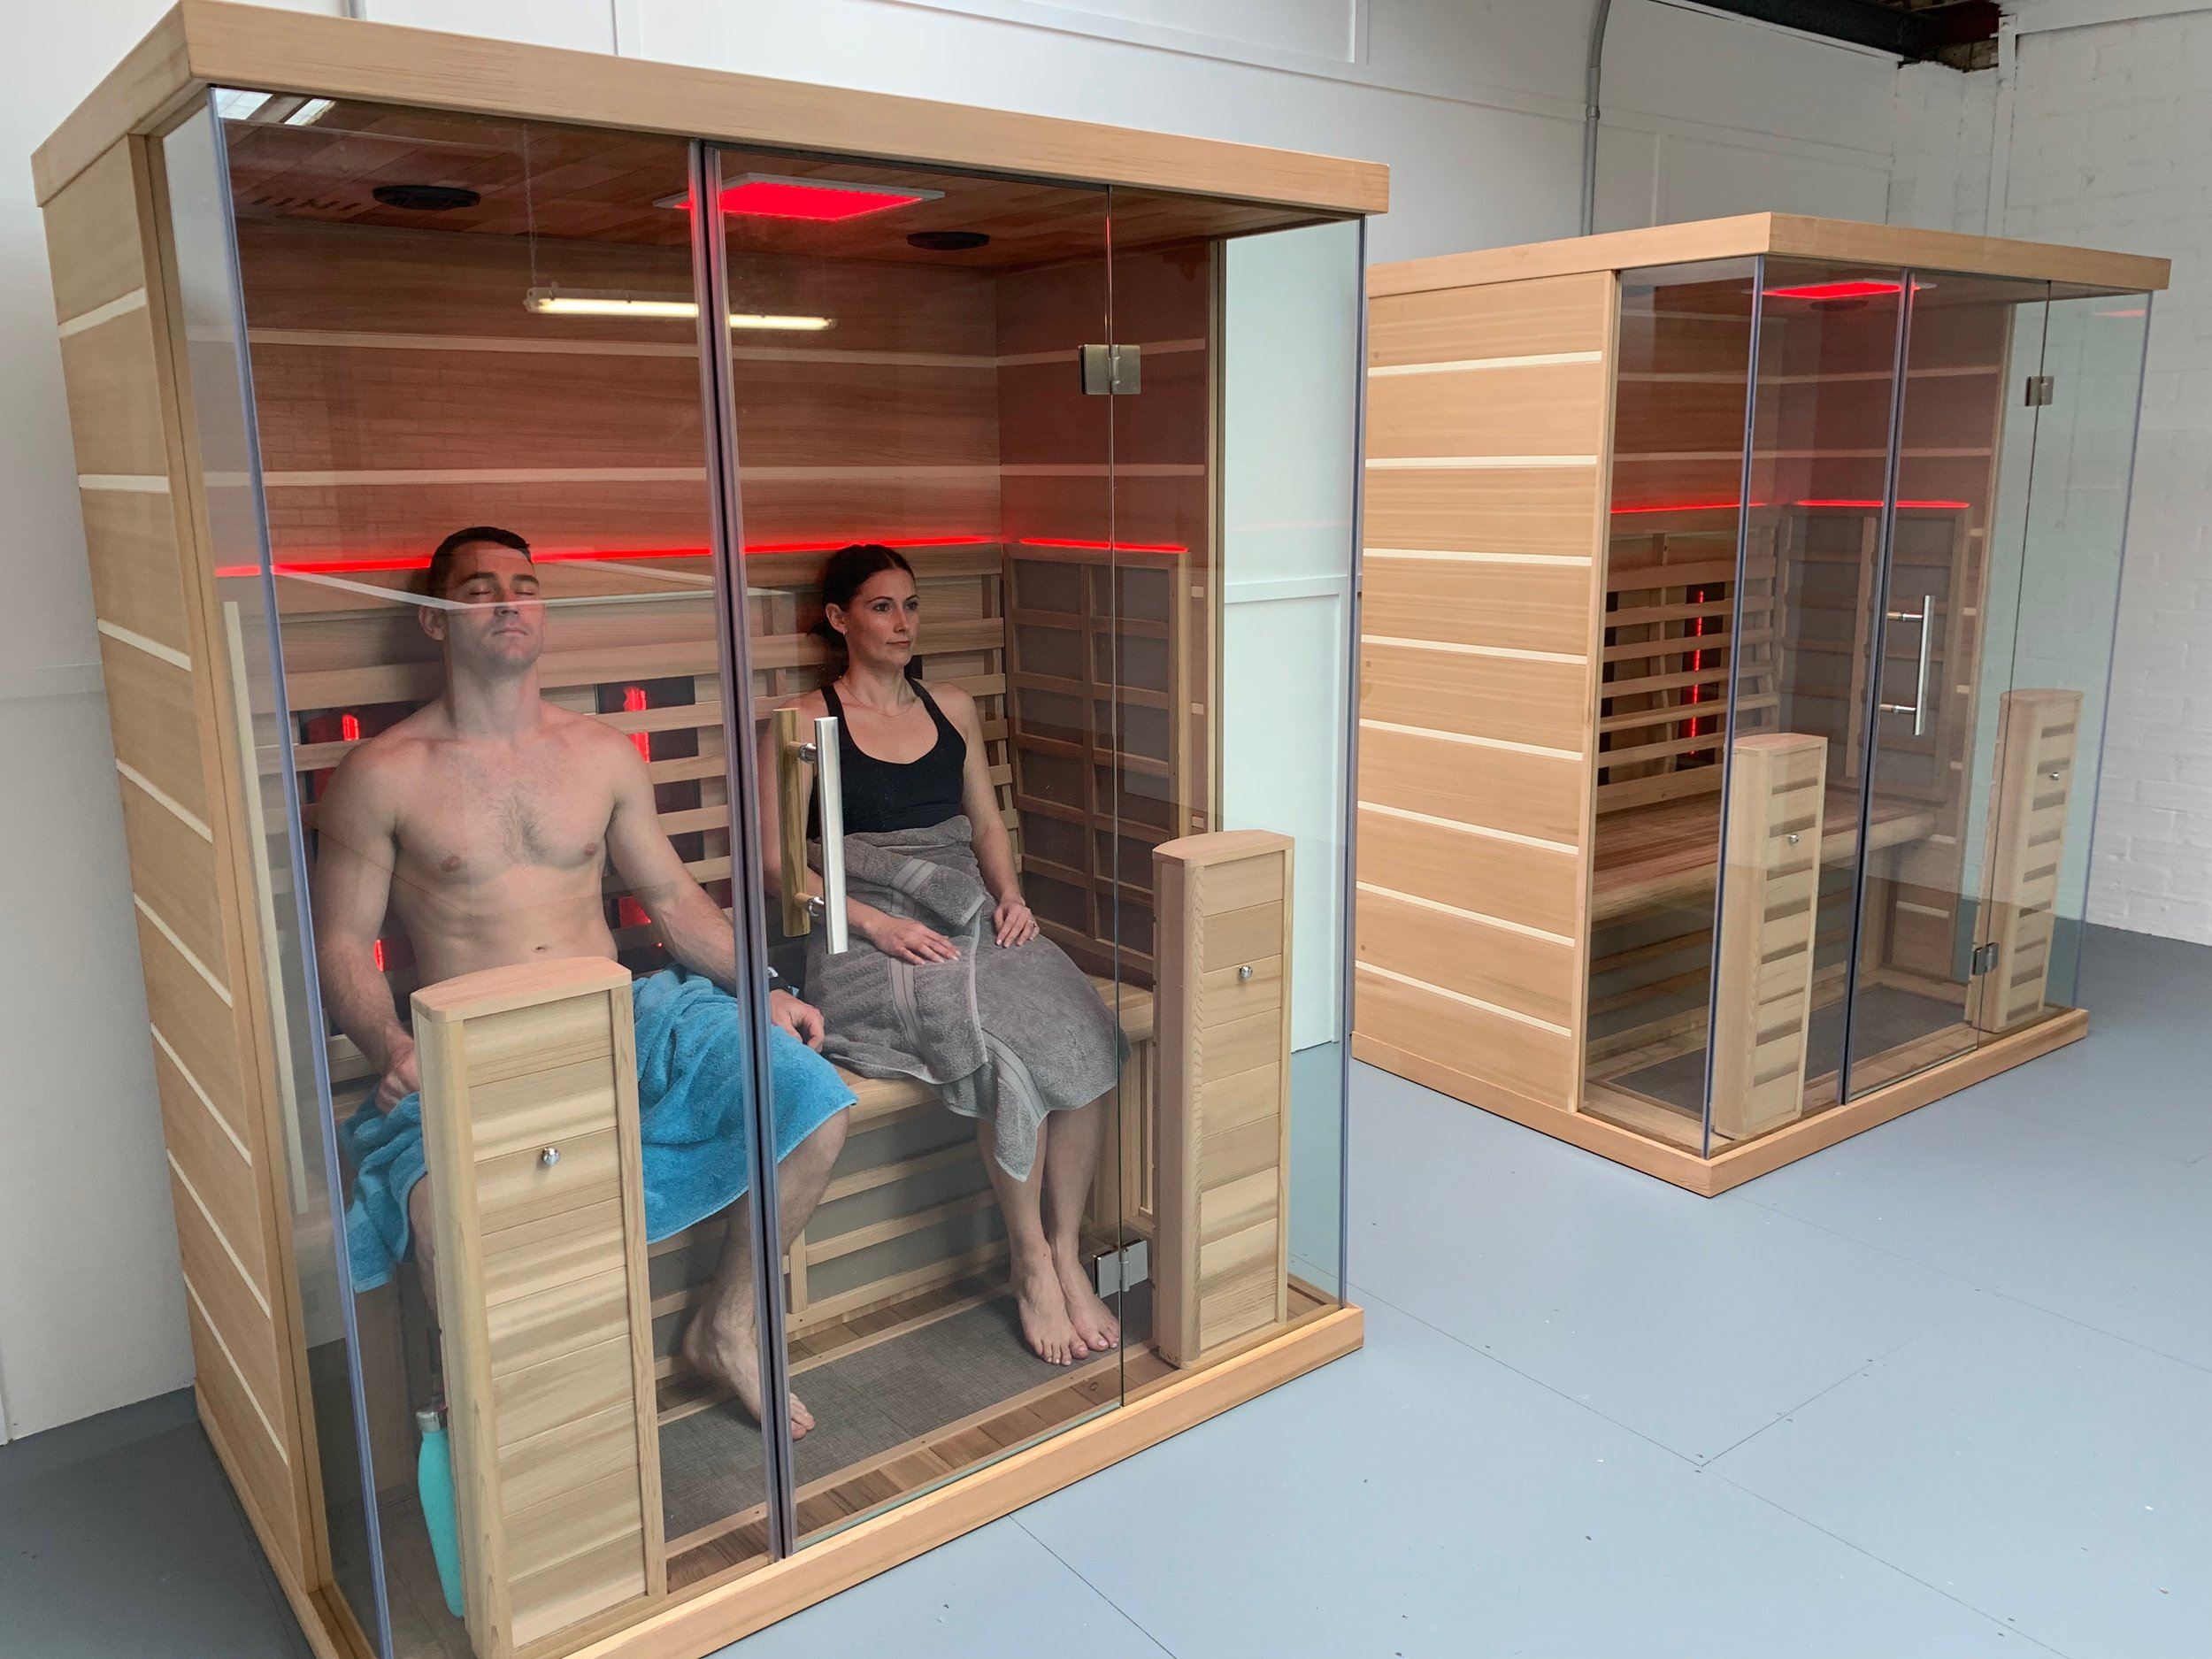 CLICK IMAGE TO SEE MORE ABOUT OUR INFARED SAUNAS -